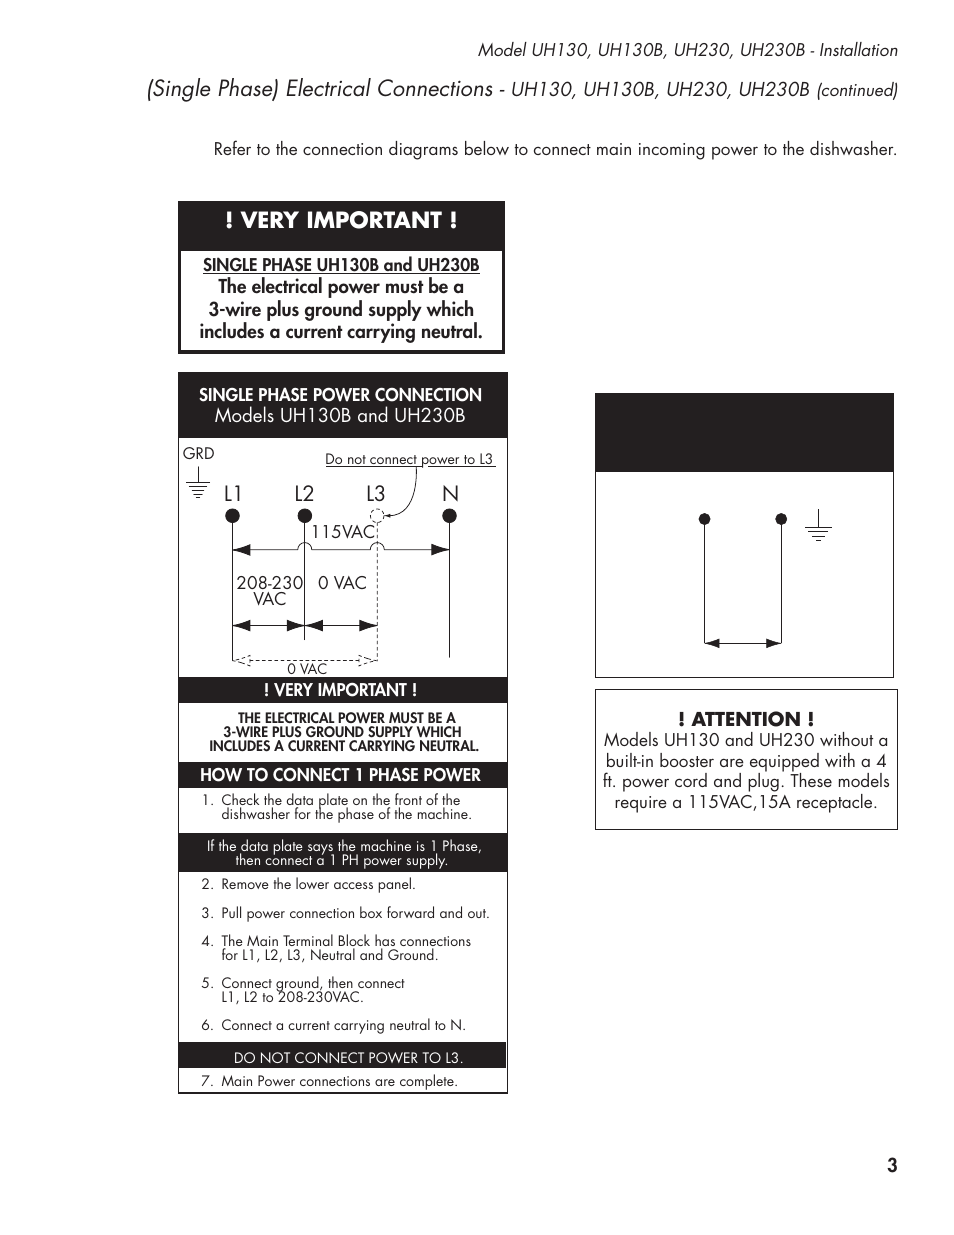 Single phase) electrical connections, Very important, L1 l2 l3 n | CHAMPION  UL-130 Manual User Manual | Page 13 / 116